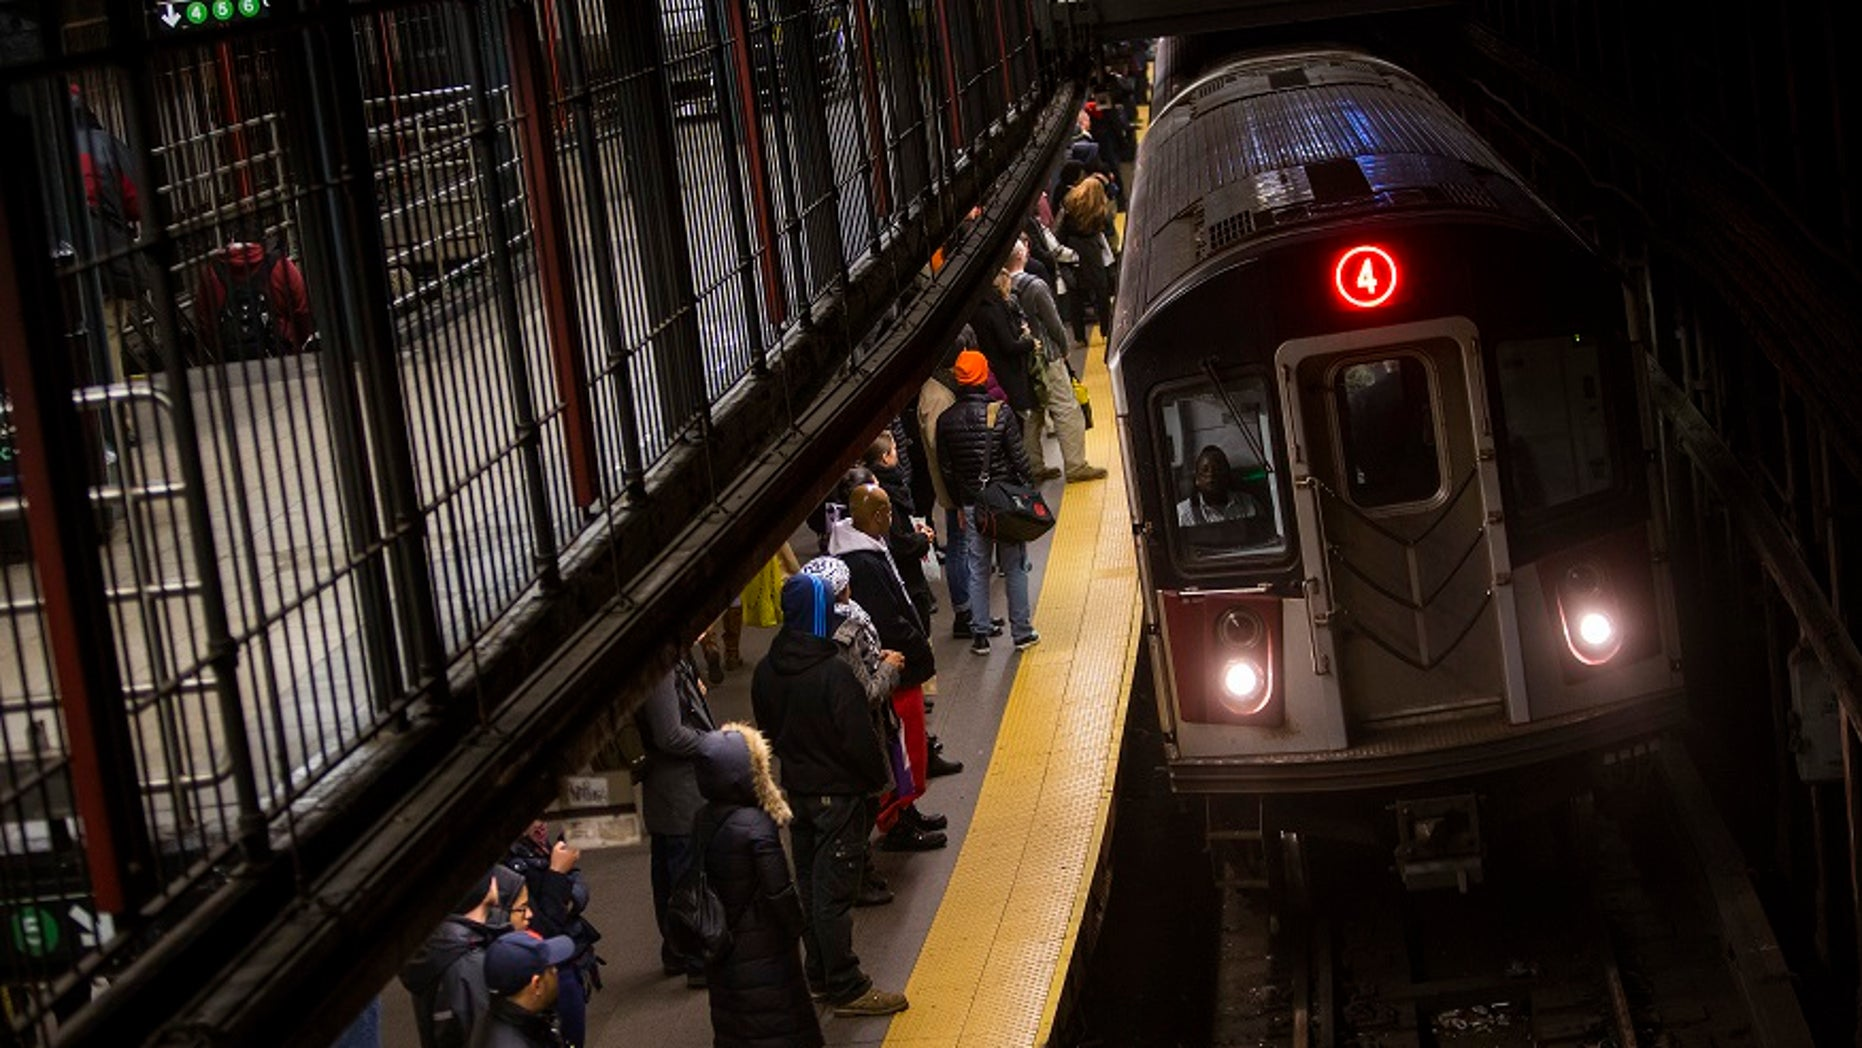 A woman was pushed onto the tracks of a New York City subway on Tuesday night, police said.